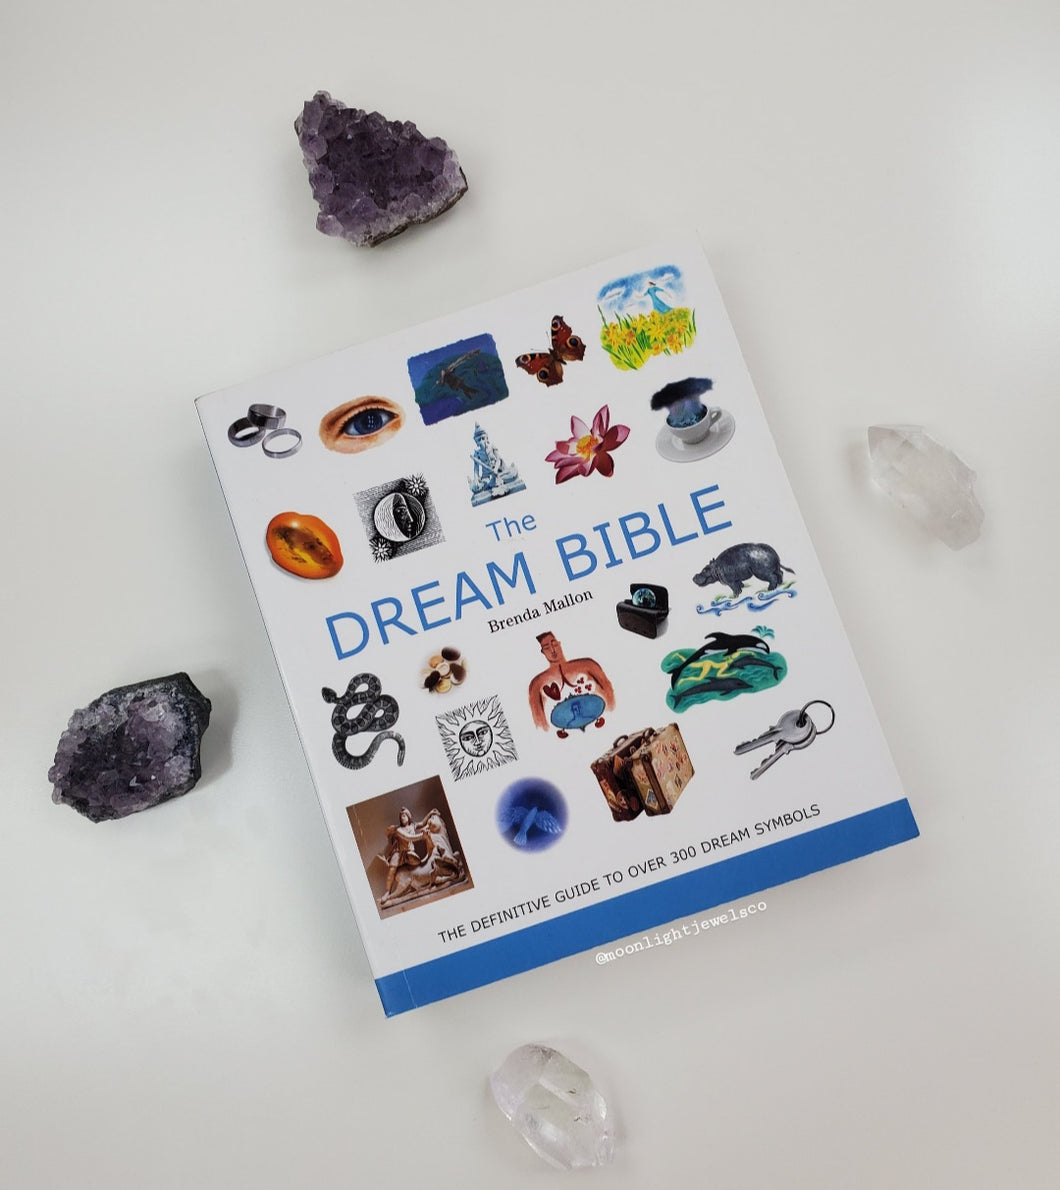 Dream Bible - The Definitive Guide to Over 300 Dream Symbols